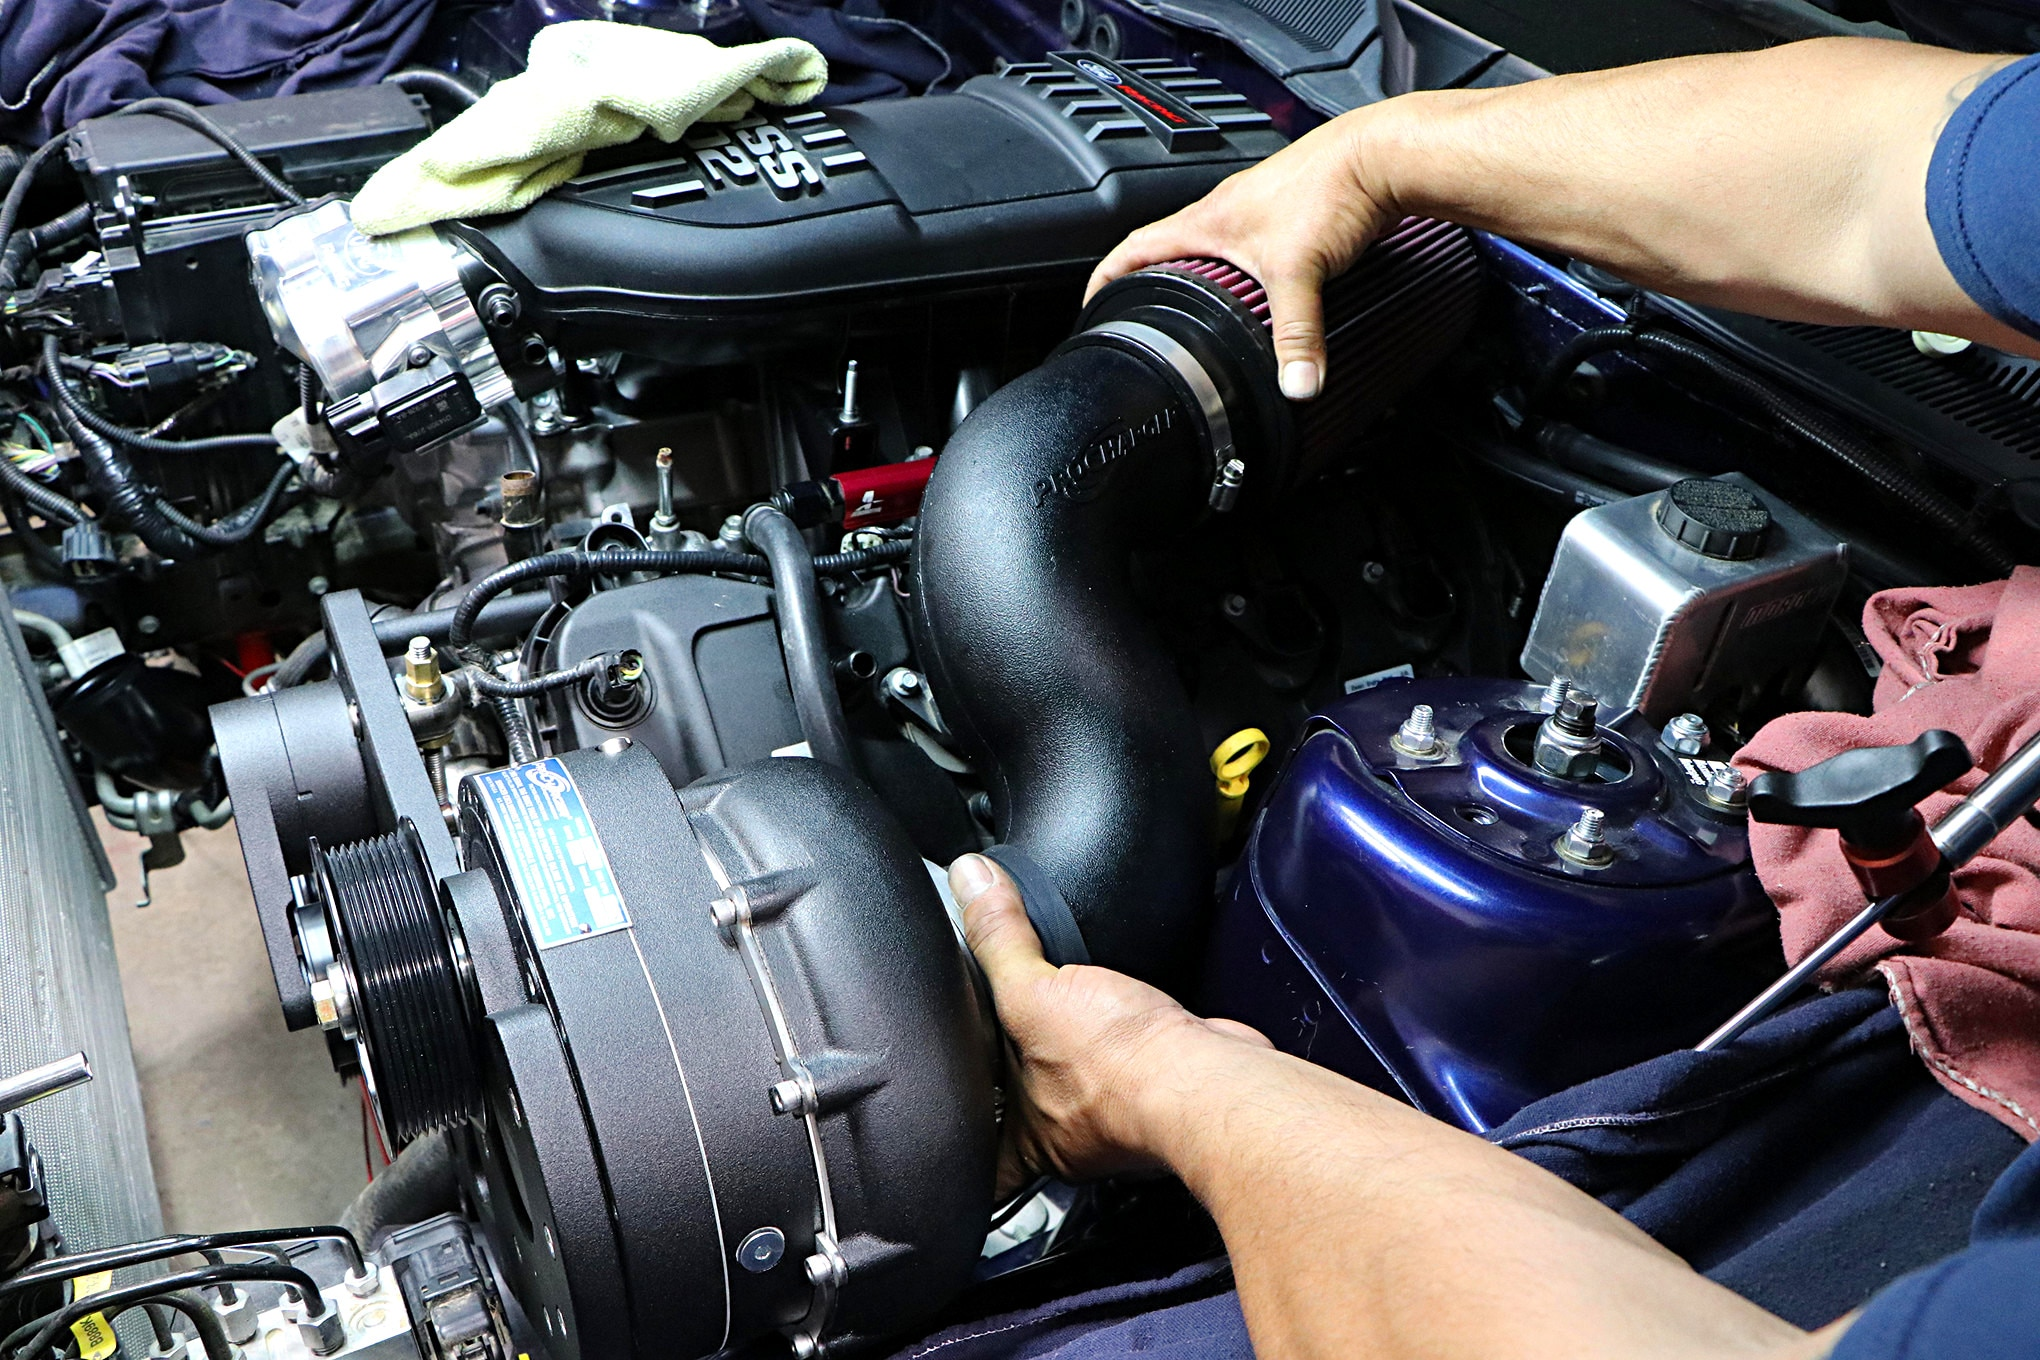 017 Mustang Procharger Supercharger Inlet Tubing